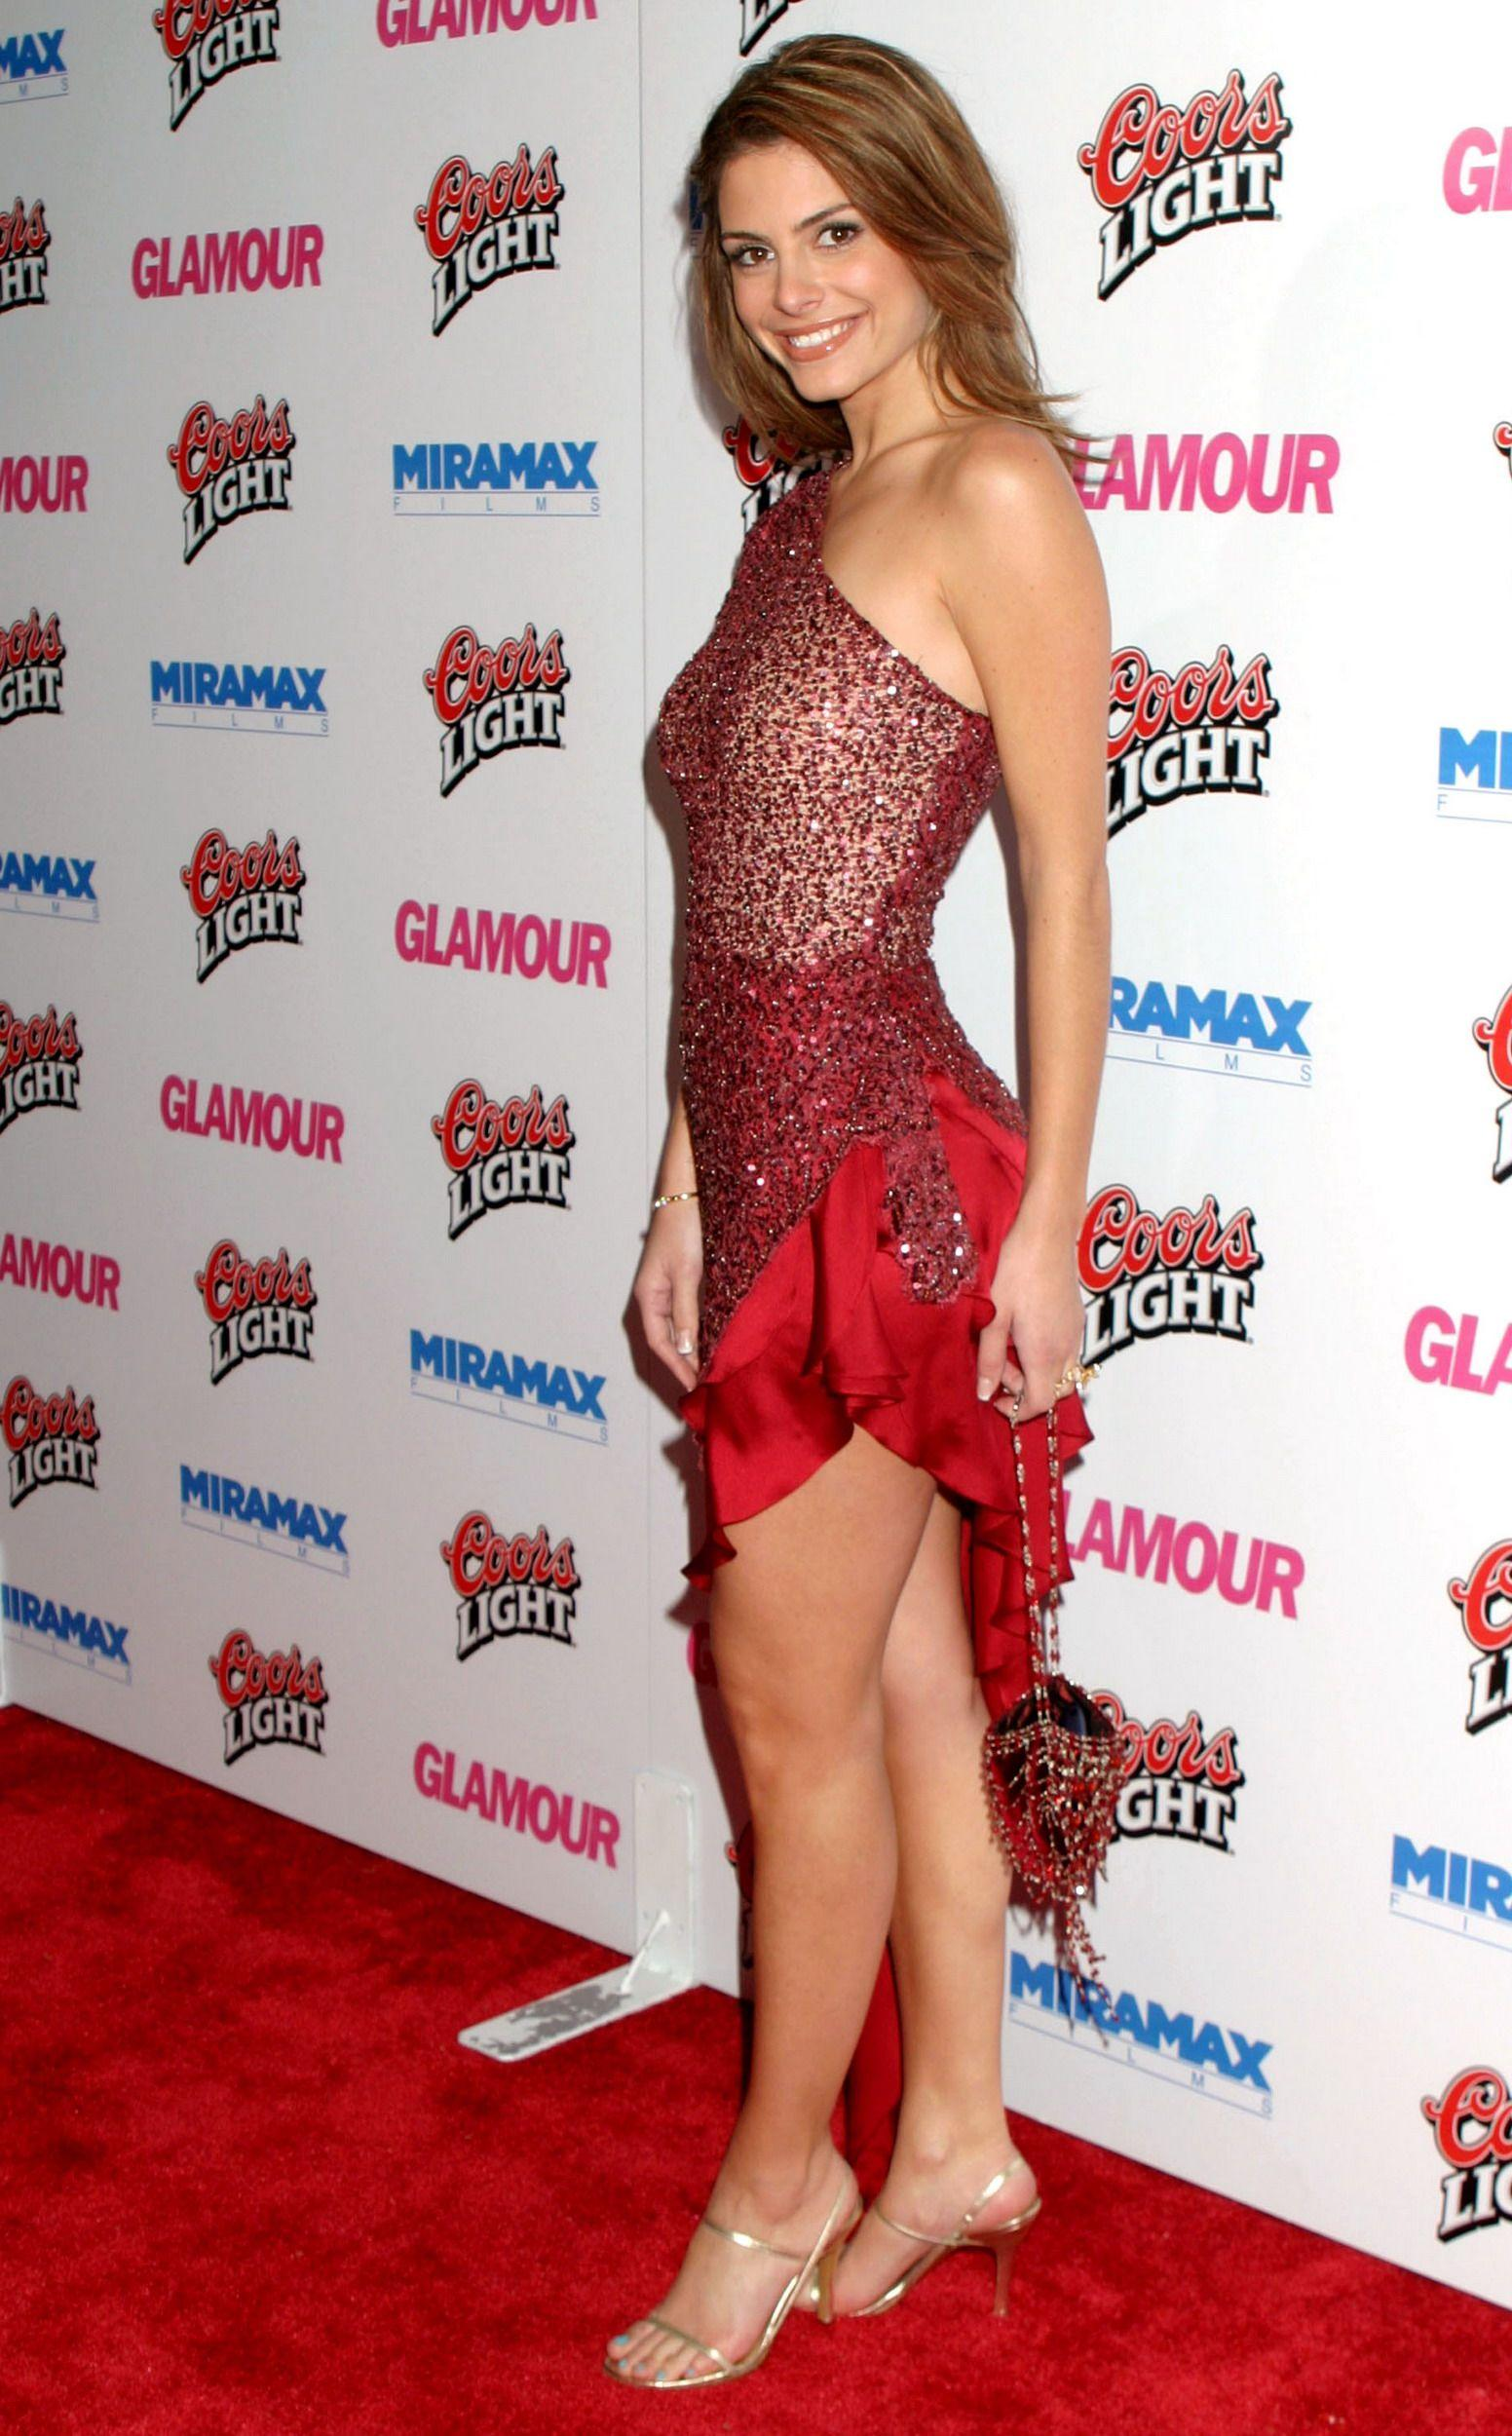 Maria Menounos photo 66 of 1151 pics, wallpapers